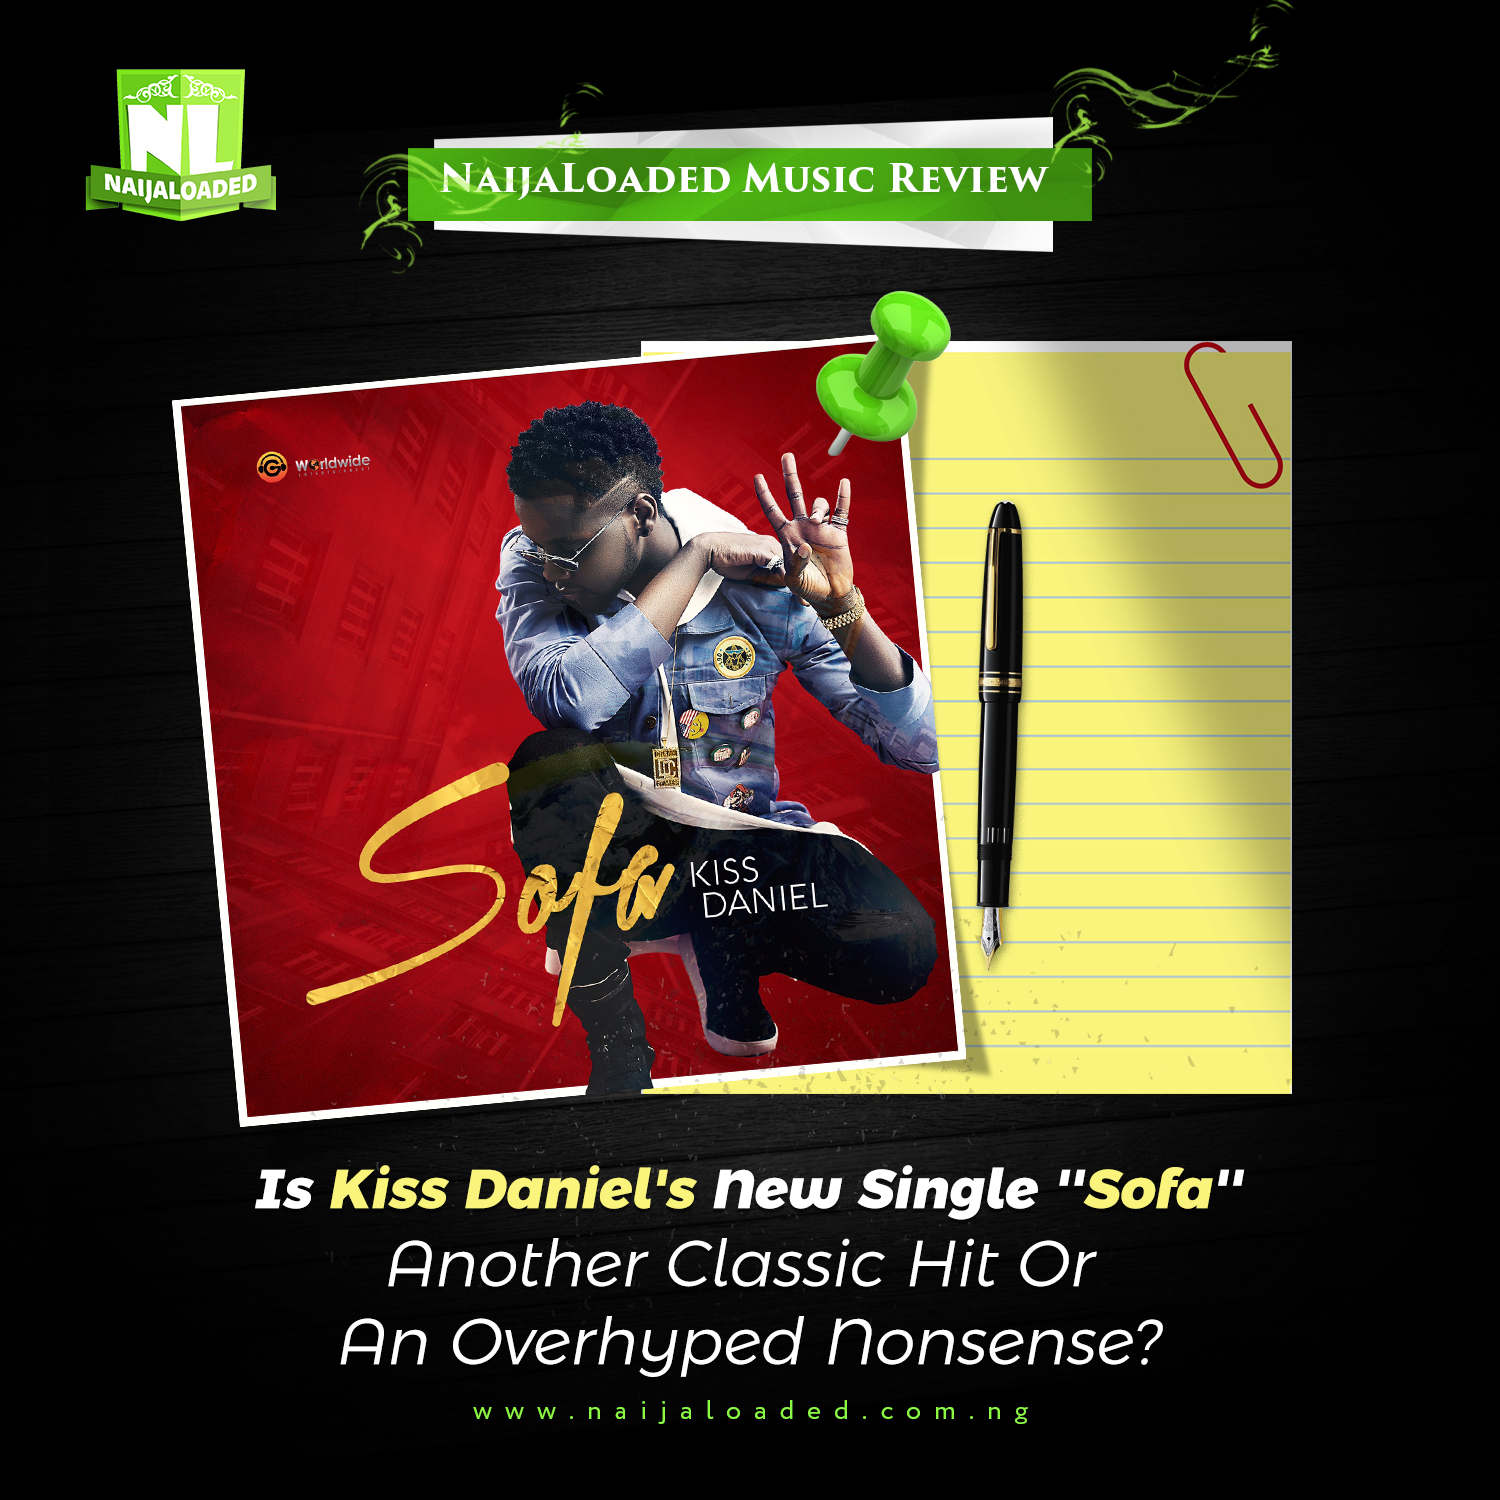 Chill On The Sofa Kiss Daniel Music Review Is Kiss Daniel S New Single Sofa Another Classic